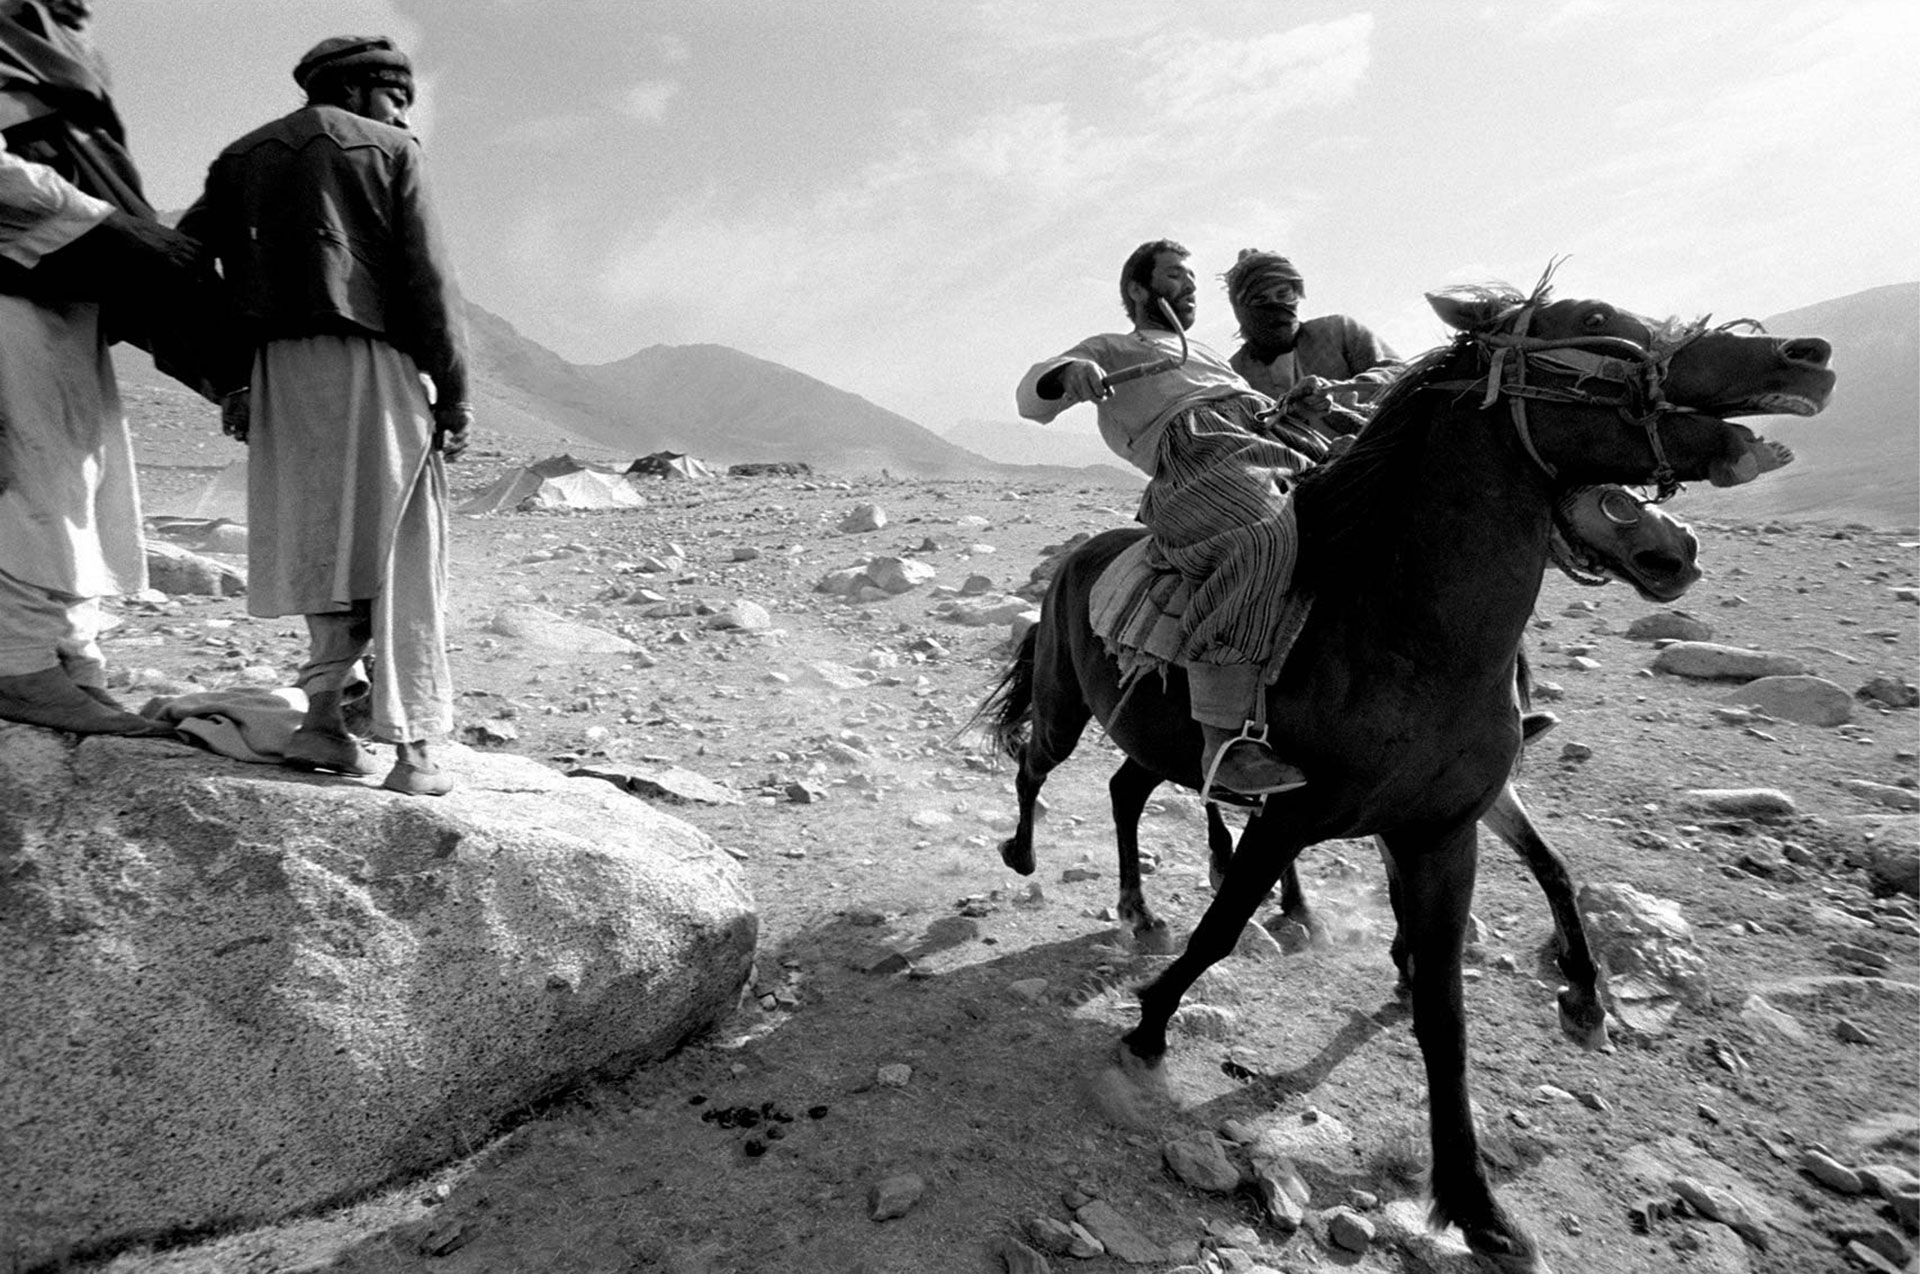 Jason Florio photography - black and white image of two Nomad men racing their Horses, as two other men watch on, in the mountains - rural Afghanistan